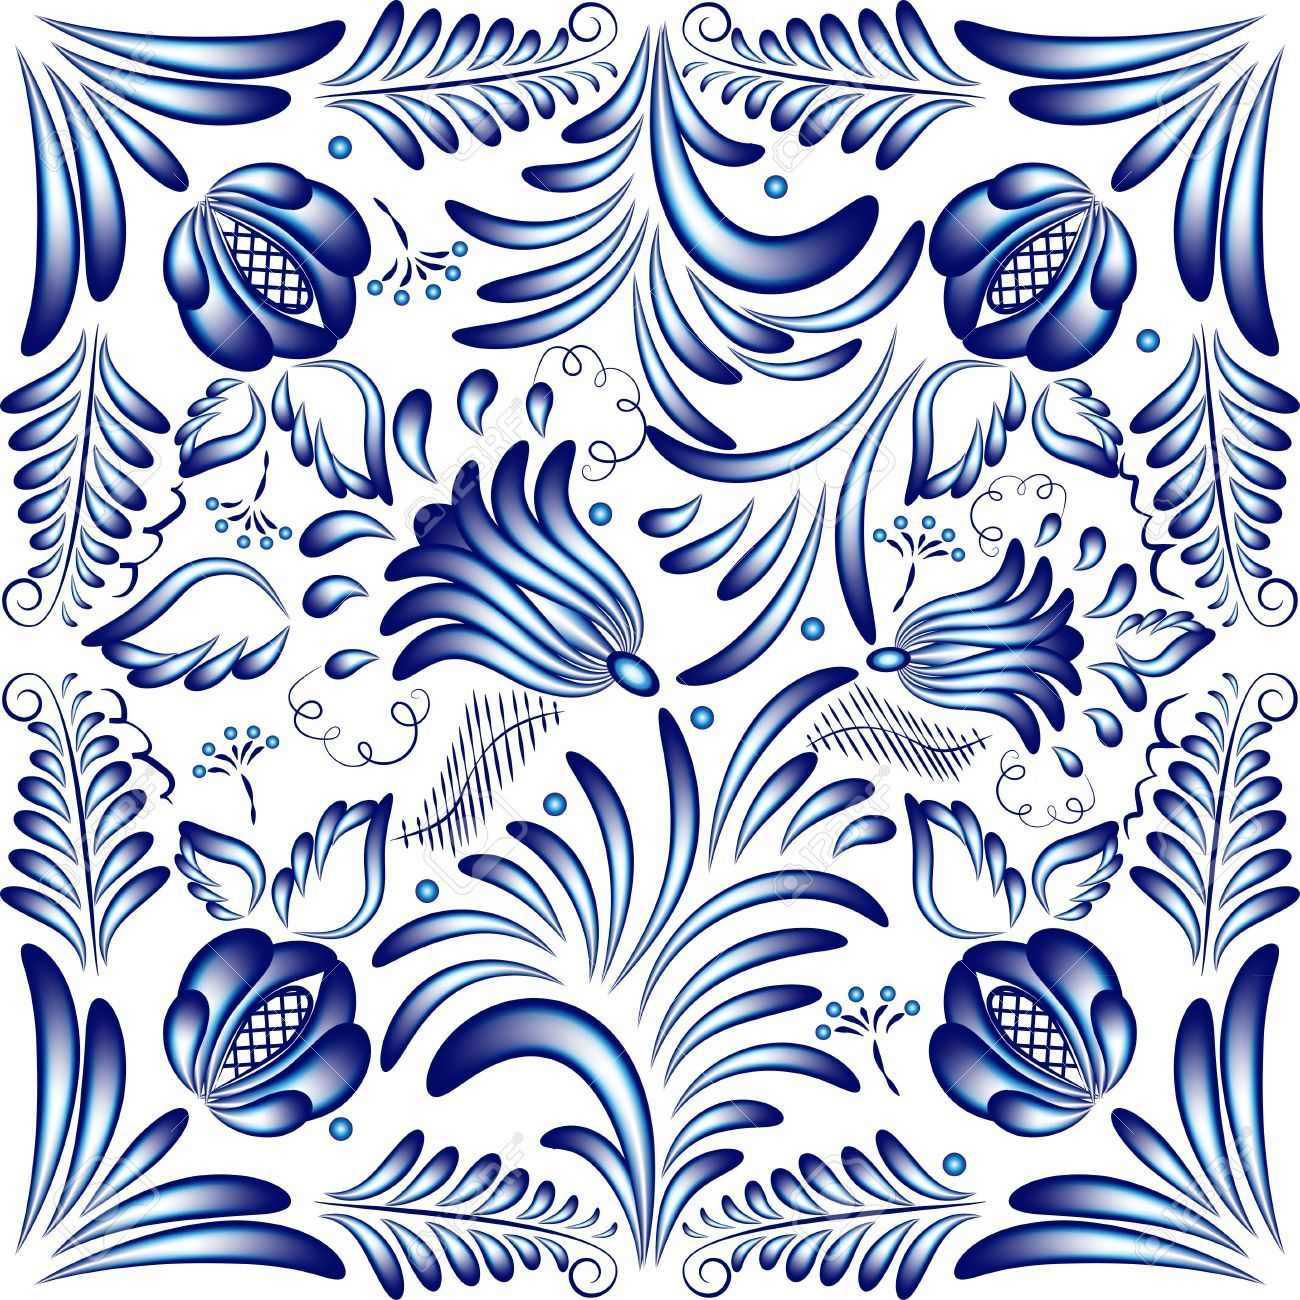 Artistic floral element abstract gzhel folk art blue flowers stock - Blue Floral Pattern In Gzhel Style Vector Illustration Royalty Free Cliparts Vectors And